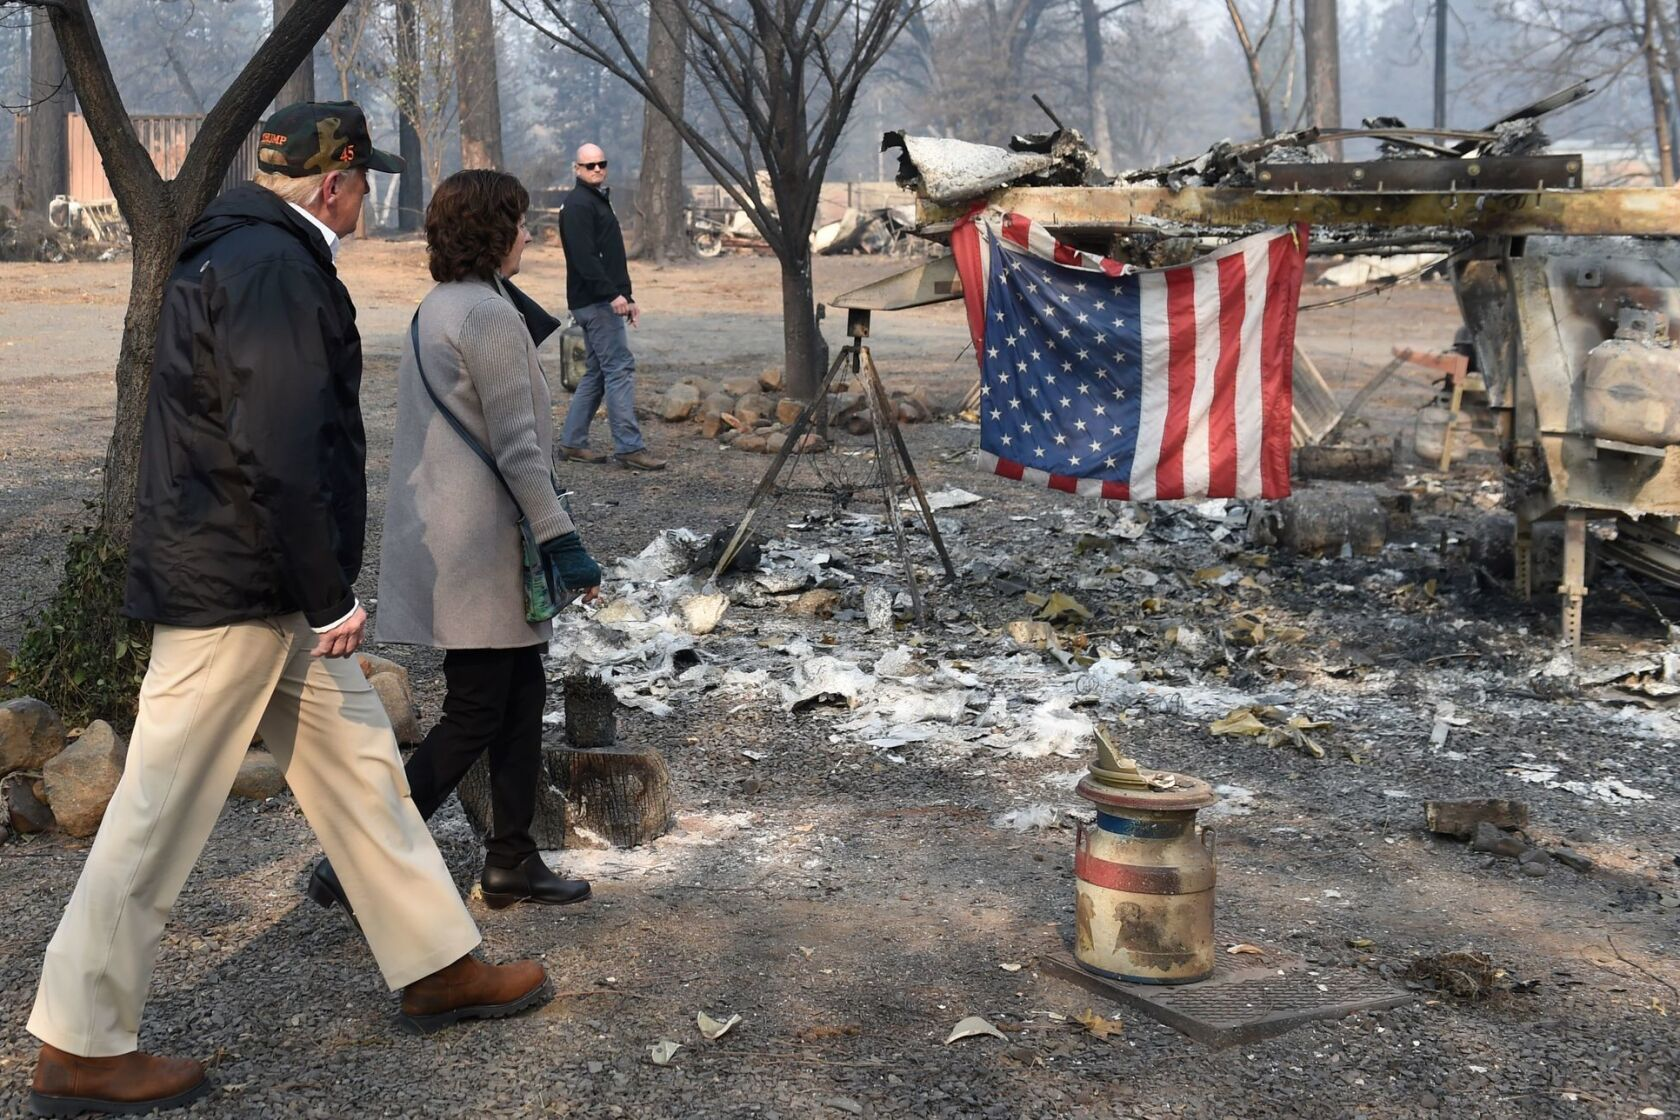 The Camp fire burned homes but left trees standing  The science